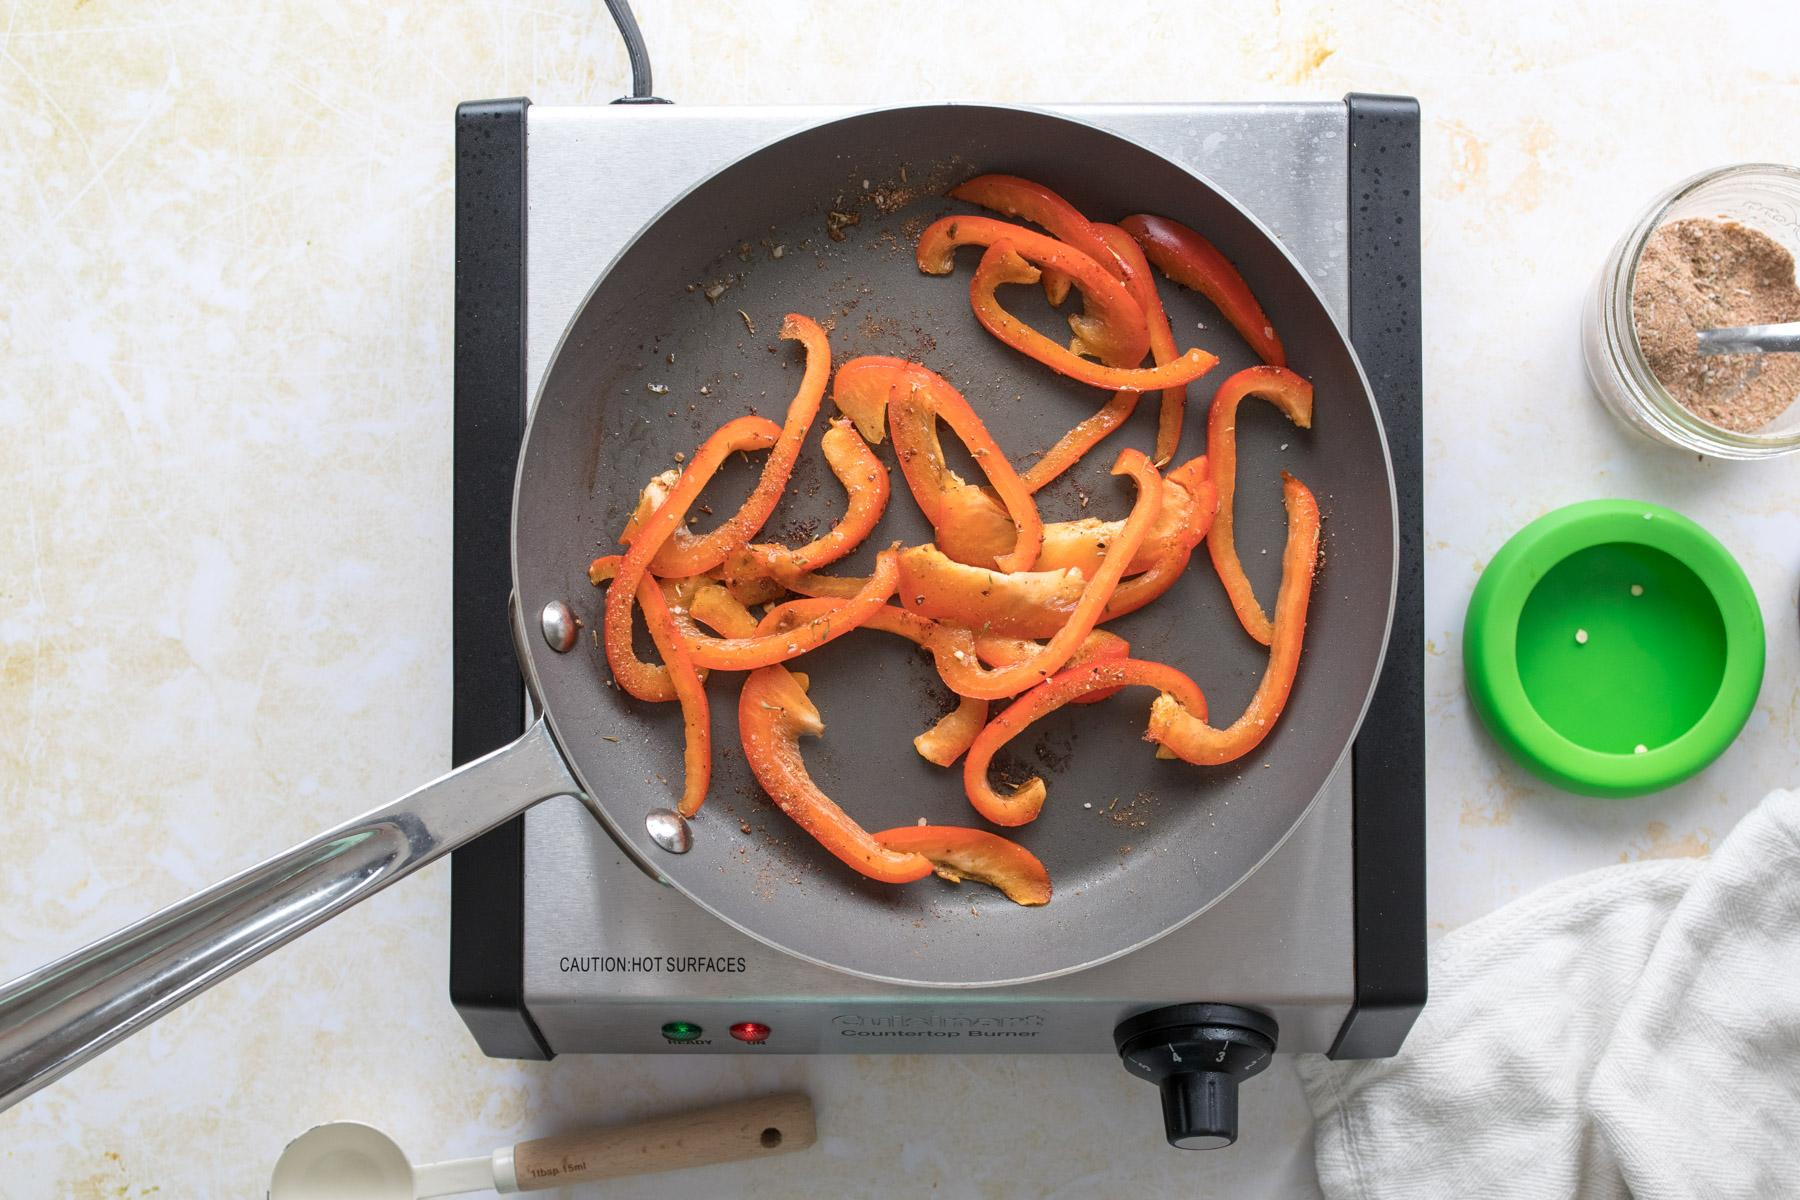 sliced red bell peppers in a sautee pan